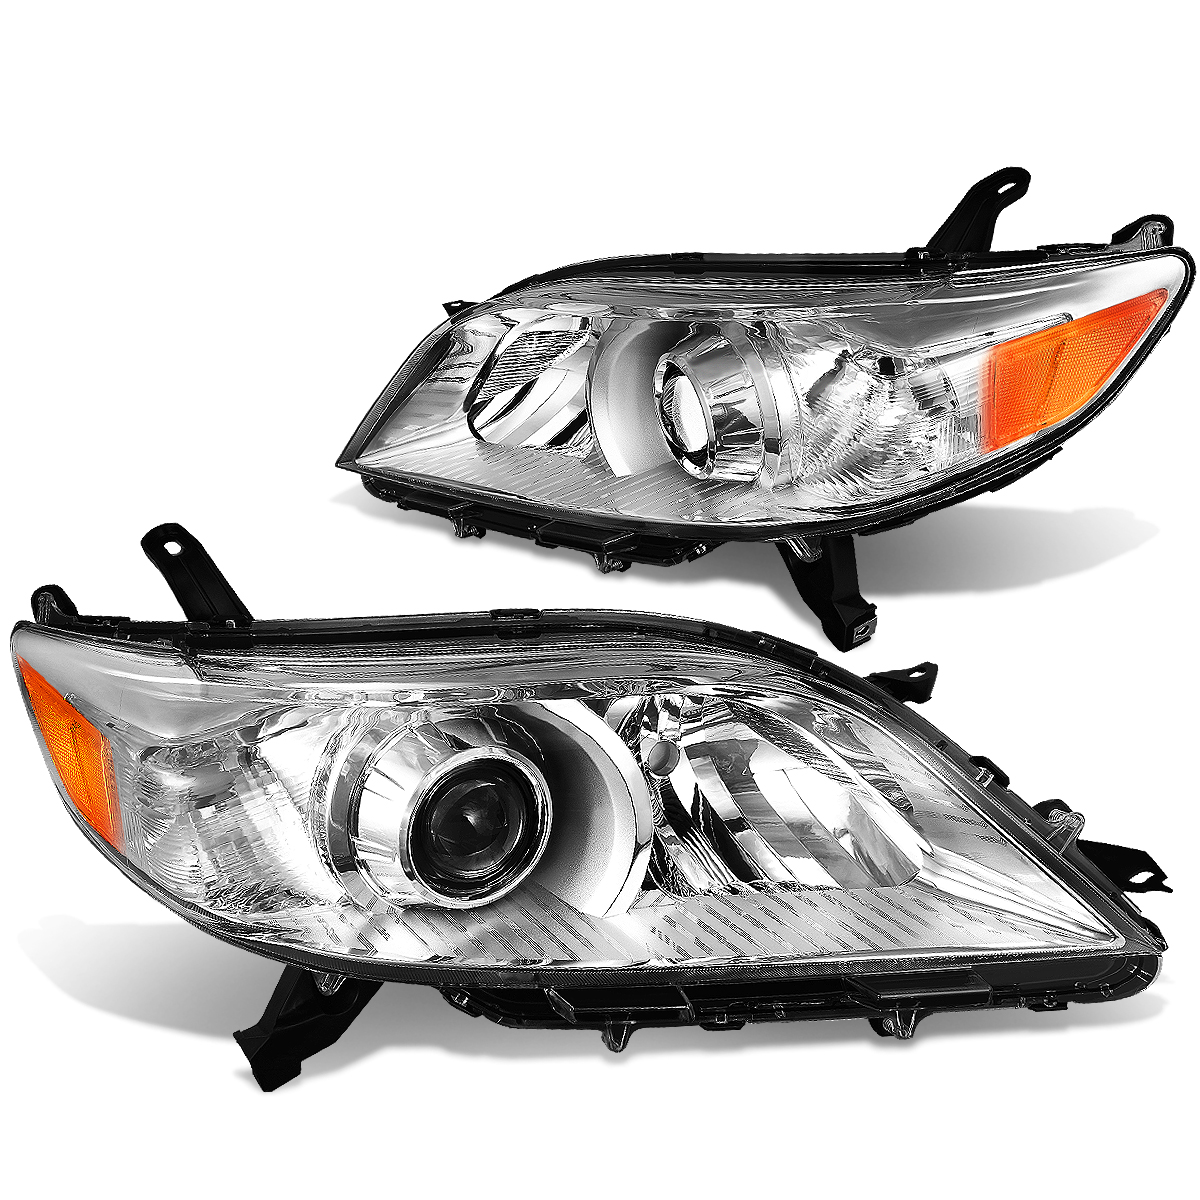 For 11-17 Toyota Sienna XL30 Pair of Projector Headlight Chrome Housing Amber Corner Lamps 12 13 14 15 16